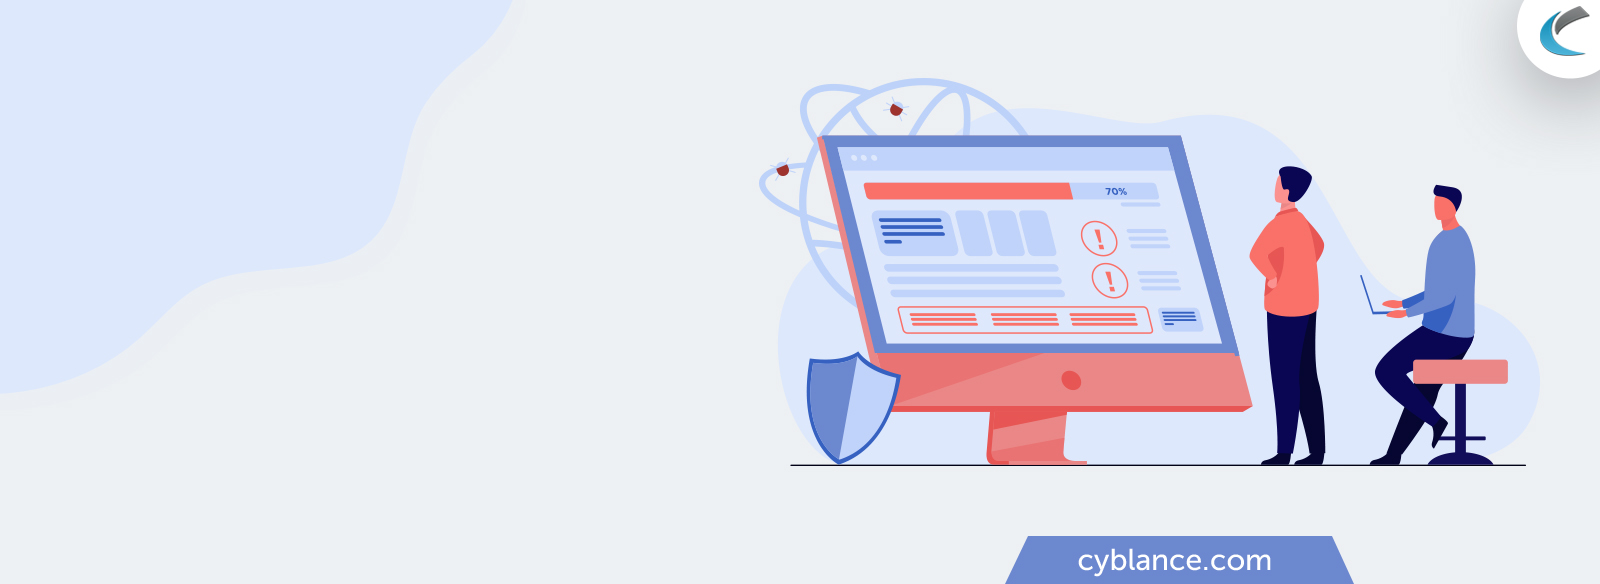 Web design trends to lookout for in 2021